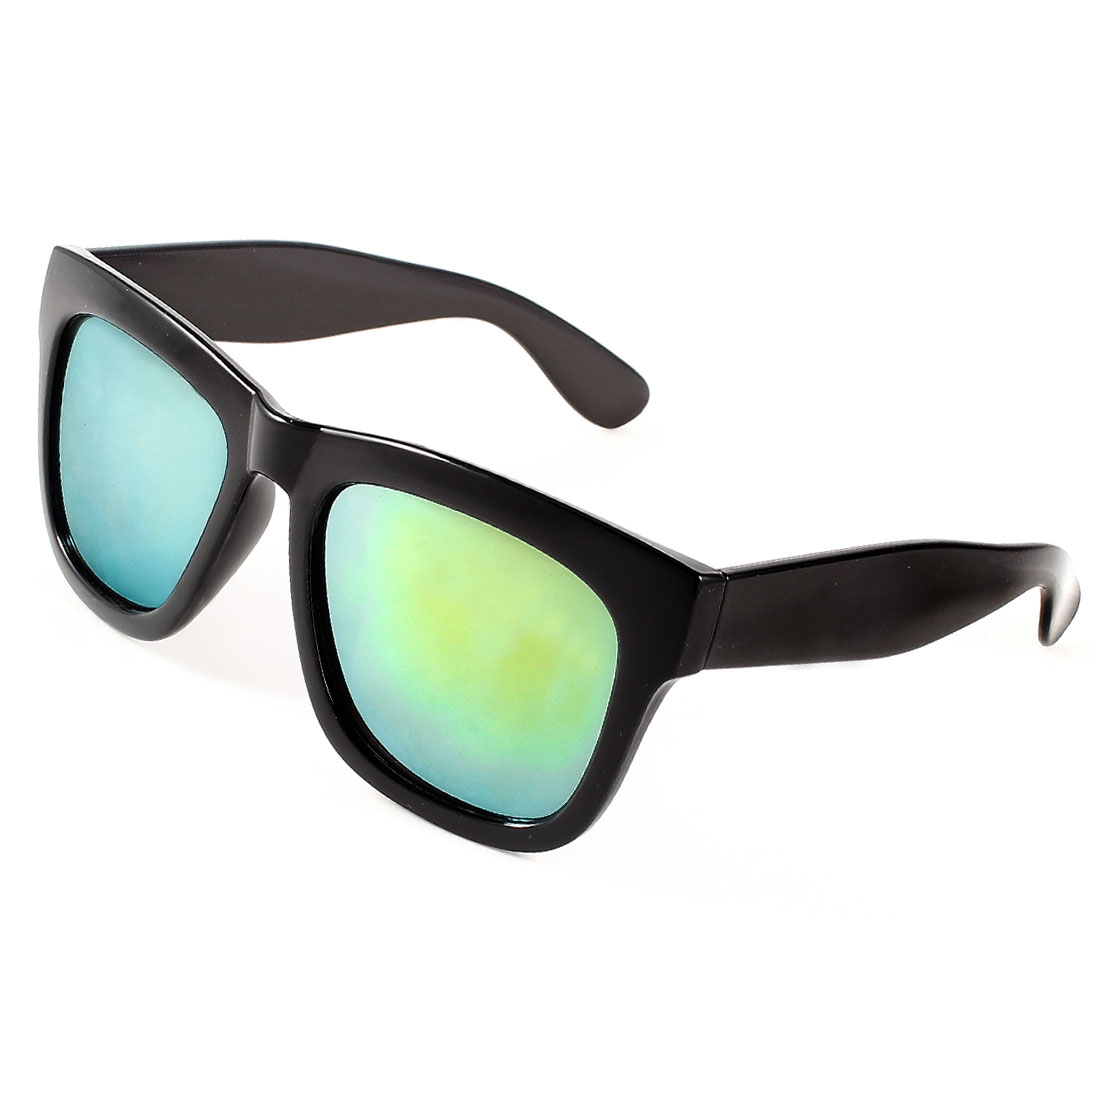 Black Plastic Full Rim Square Design Green Lens Sunglasses for Lady